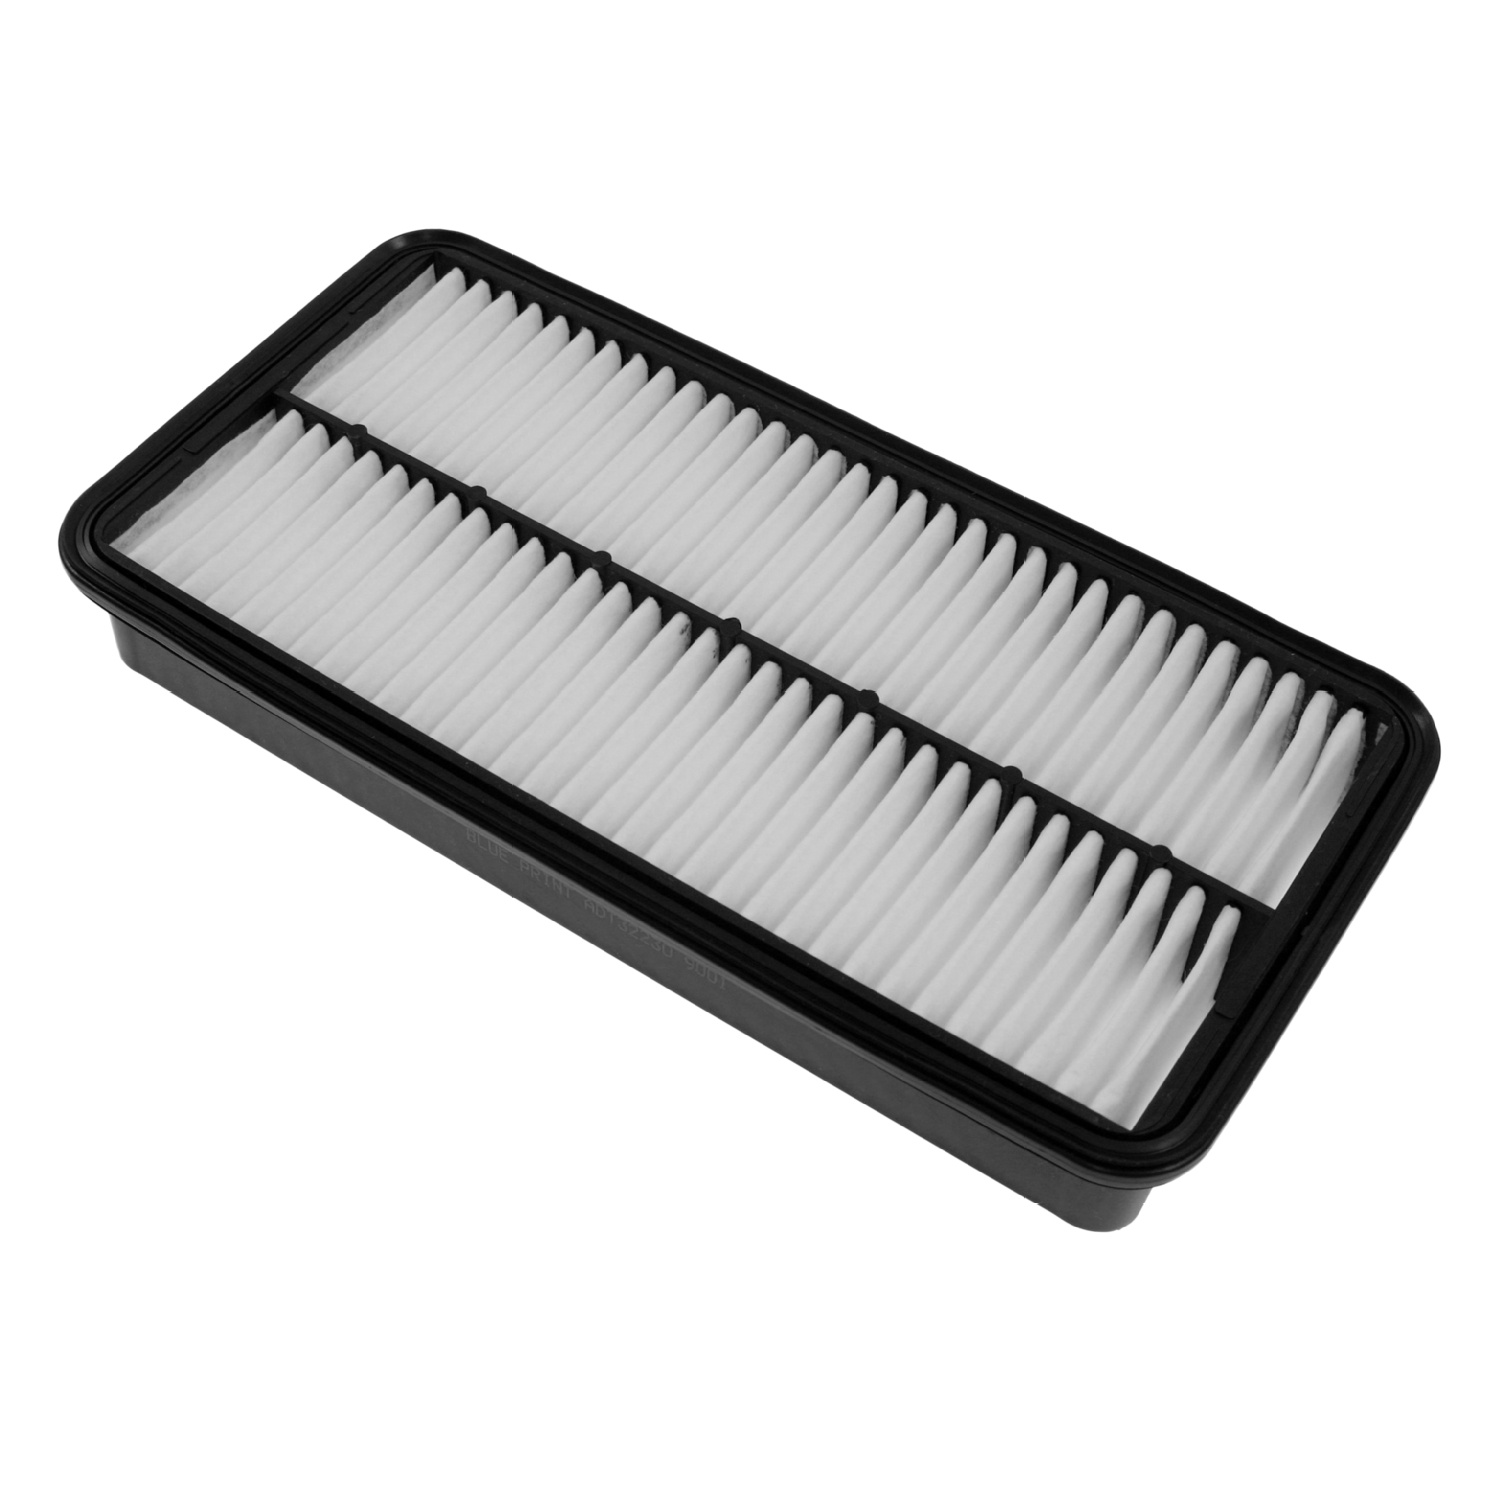 Genuine Toyota Mr2 Mk2 Rav4 Cardboard Panel Cleaner Air Filter 17801-64010